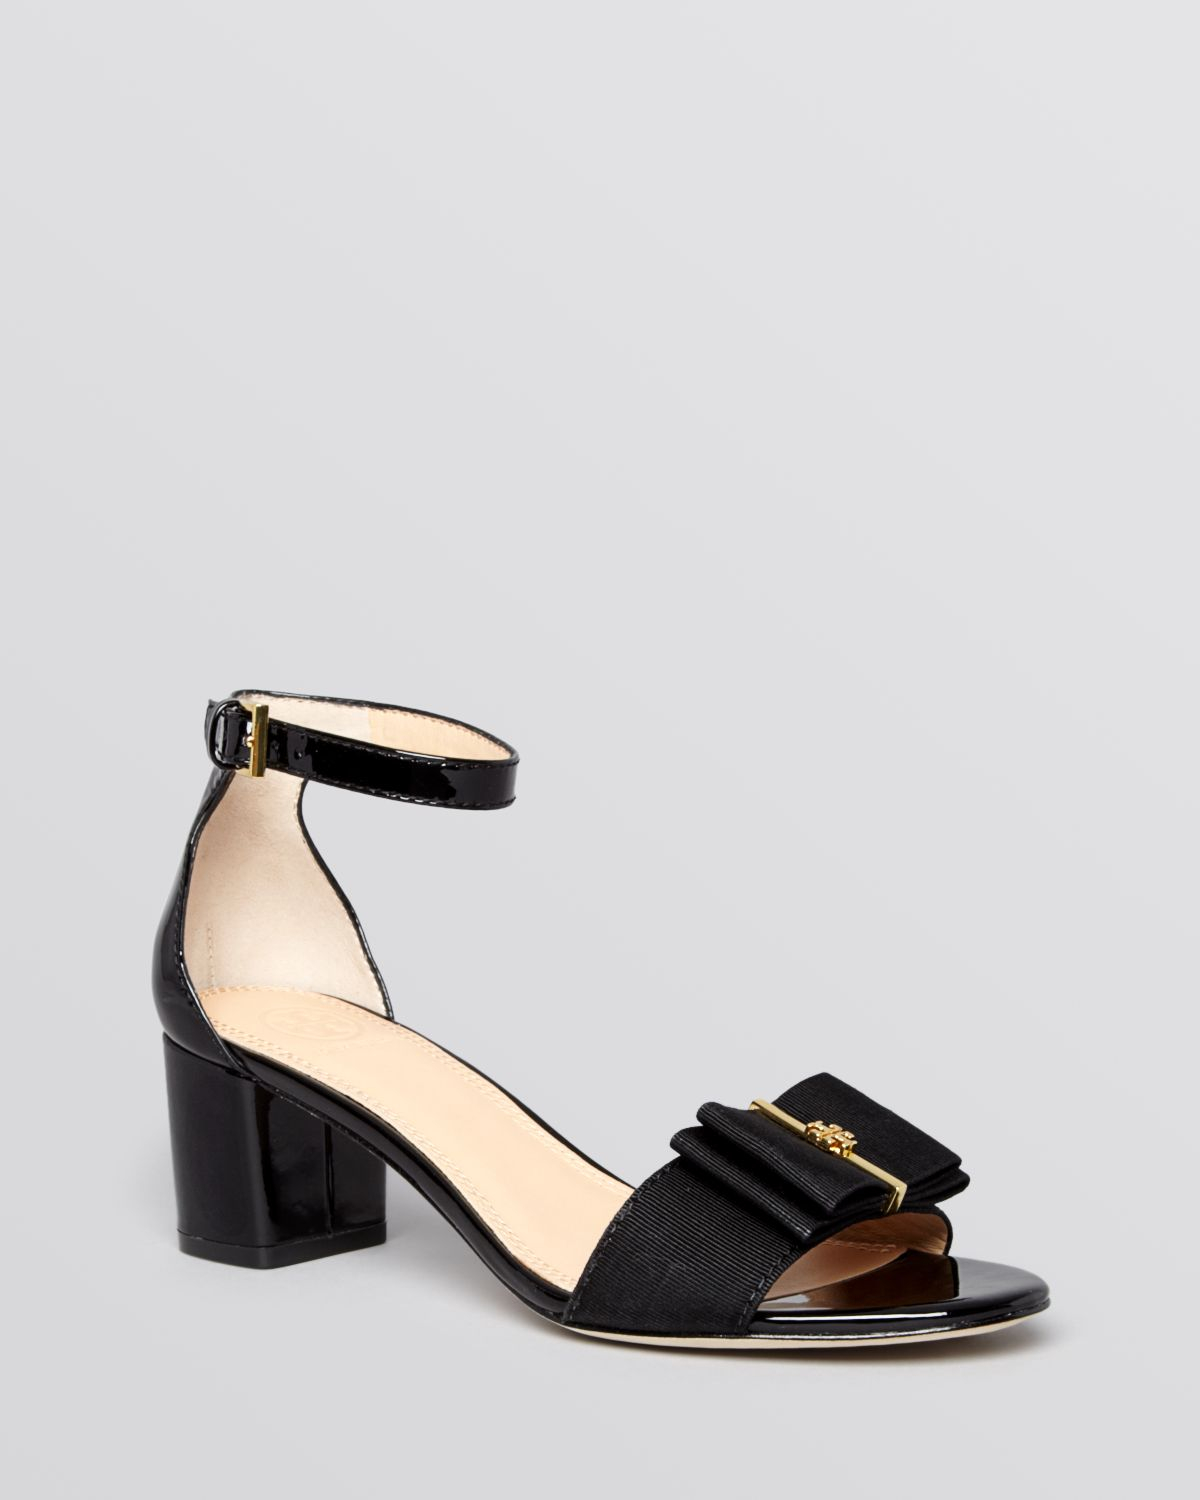 Lyst - Tory Burch Open Toe Ankle Strap Sandals Trudy in Black